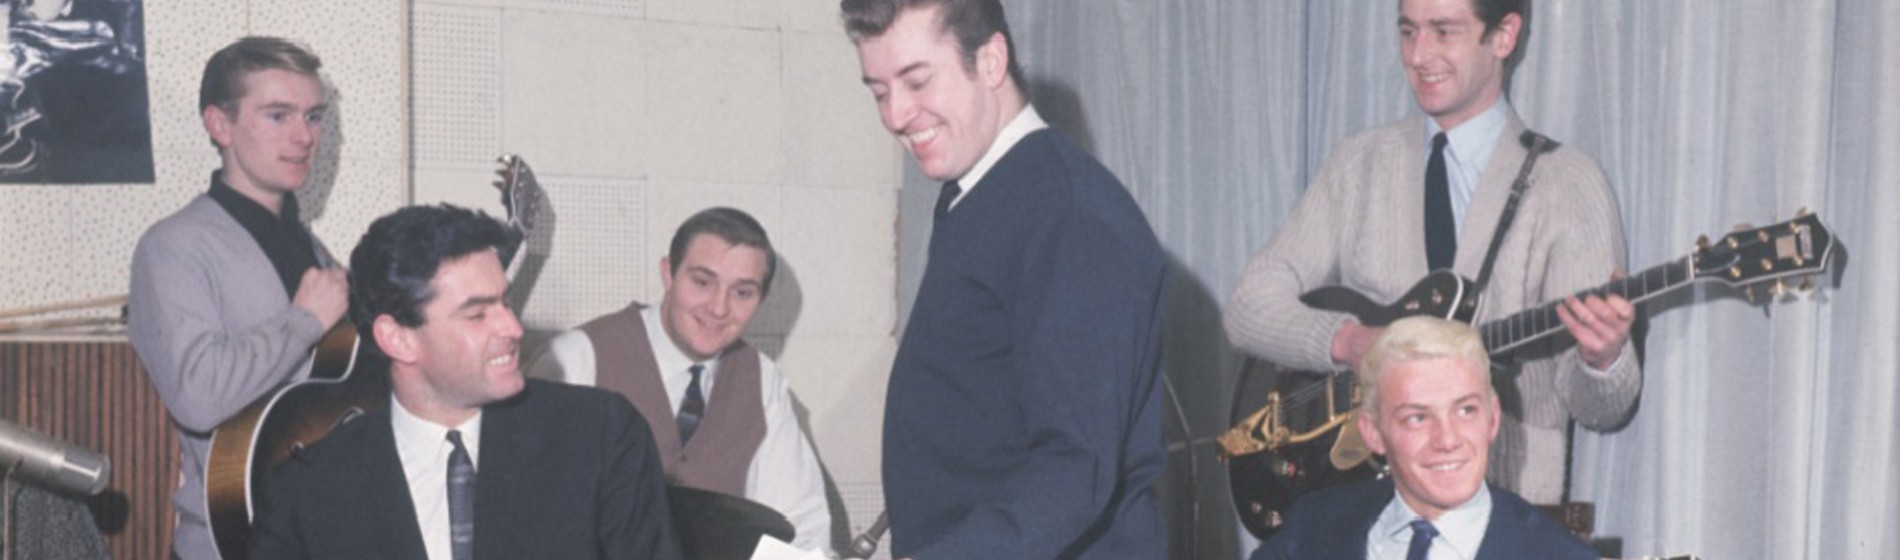 Life in the Death of Joe Meek - Featured